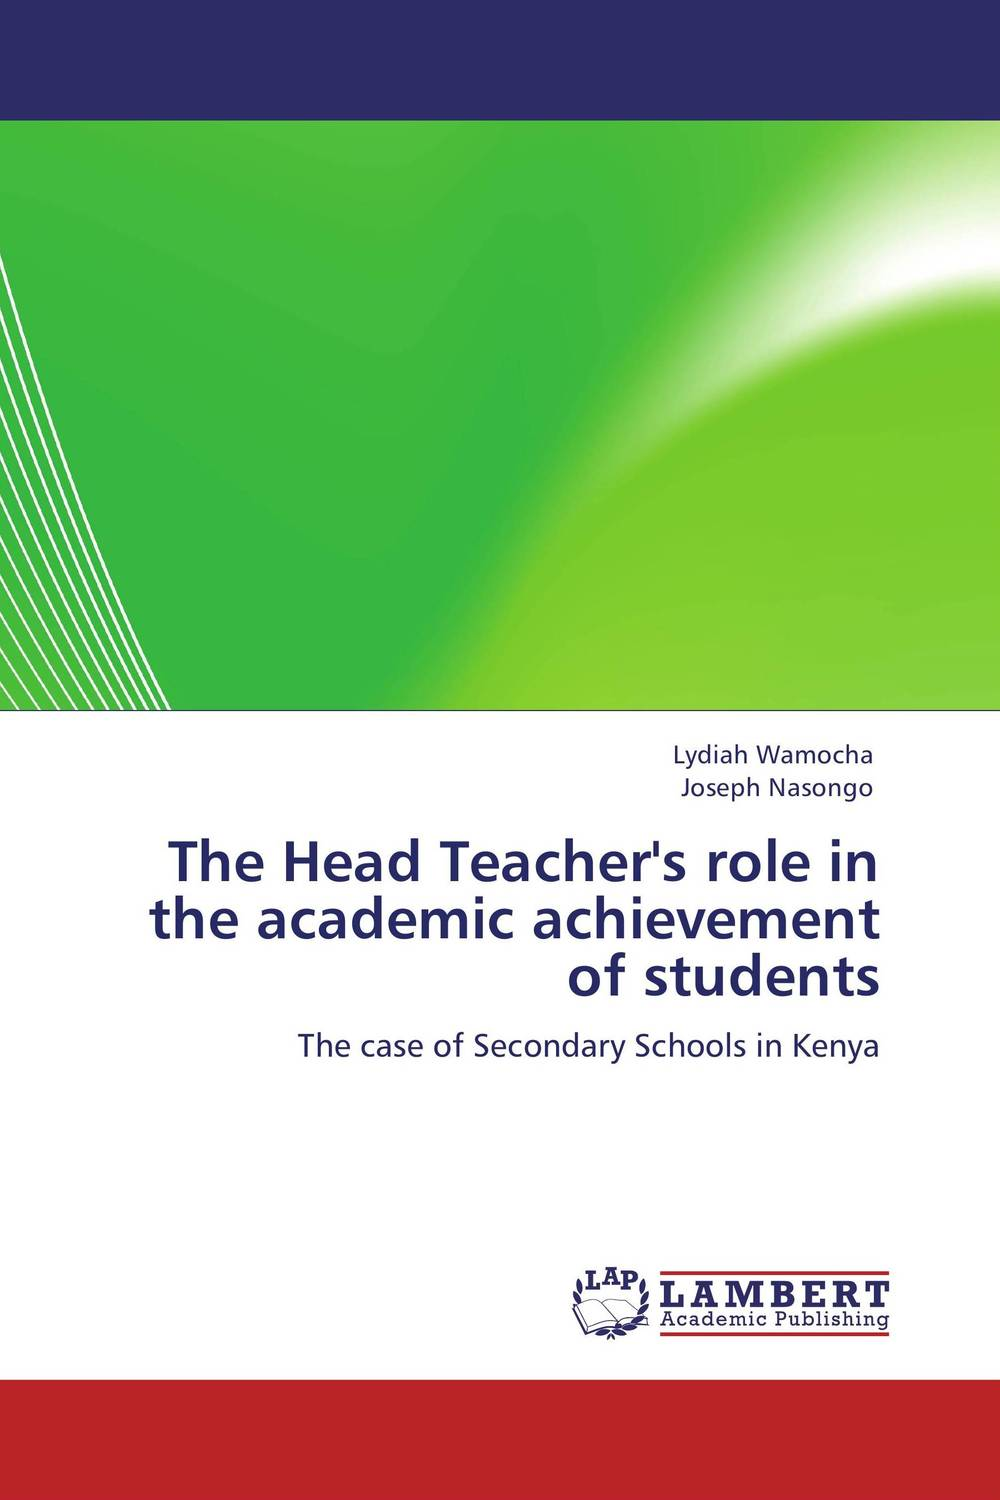 The Head Teacher's role in the academic achievement of students role of school leadership in promoting moral integrity among students